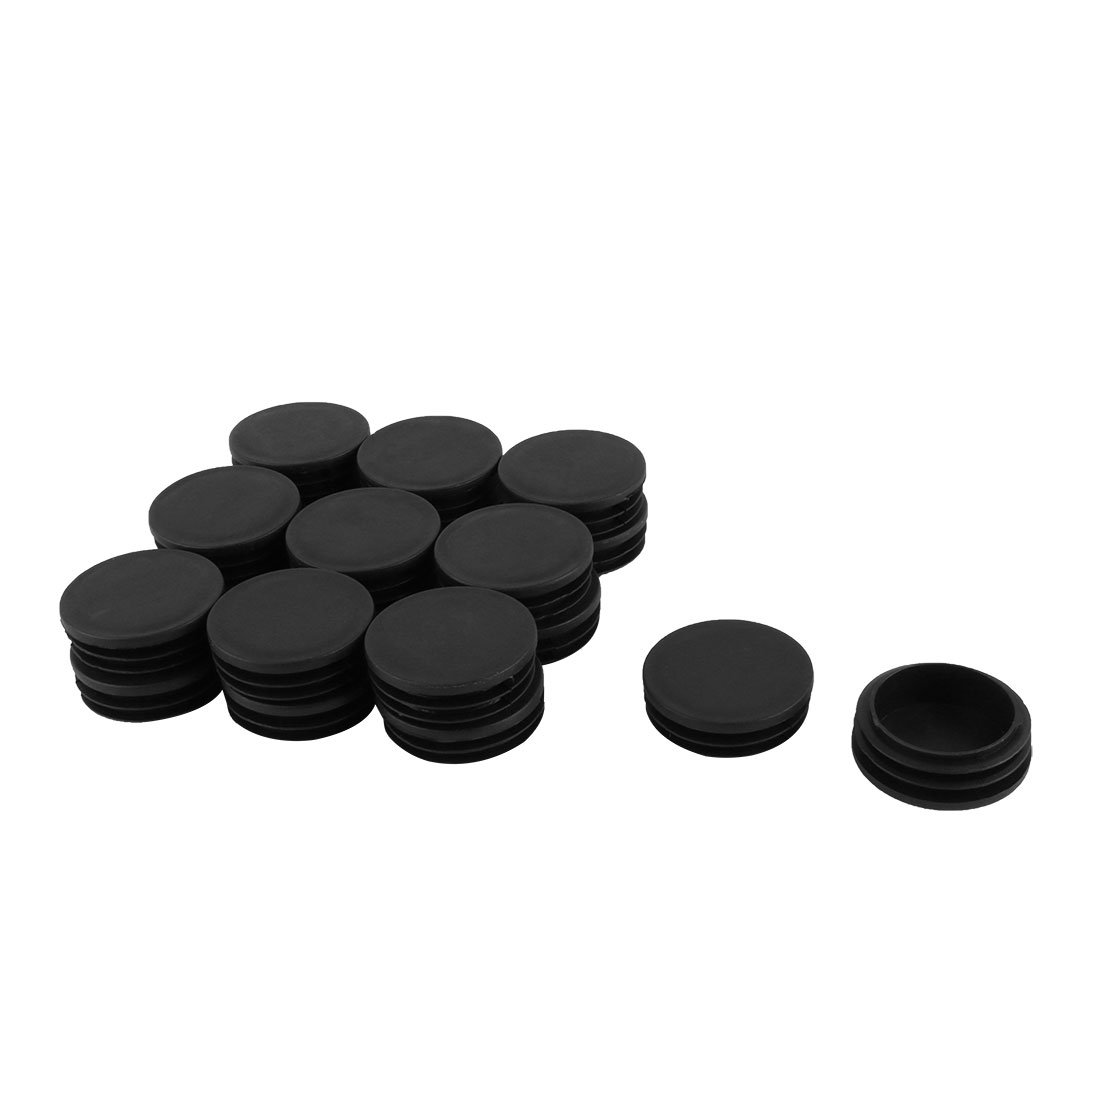 Home Office School Plastic Round Shaped Furniture Table Chair Leg Feet Tube Insert Black 20 Pcs